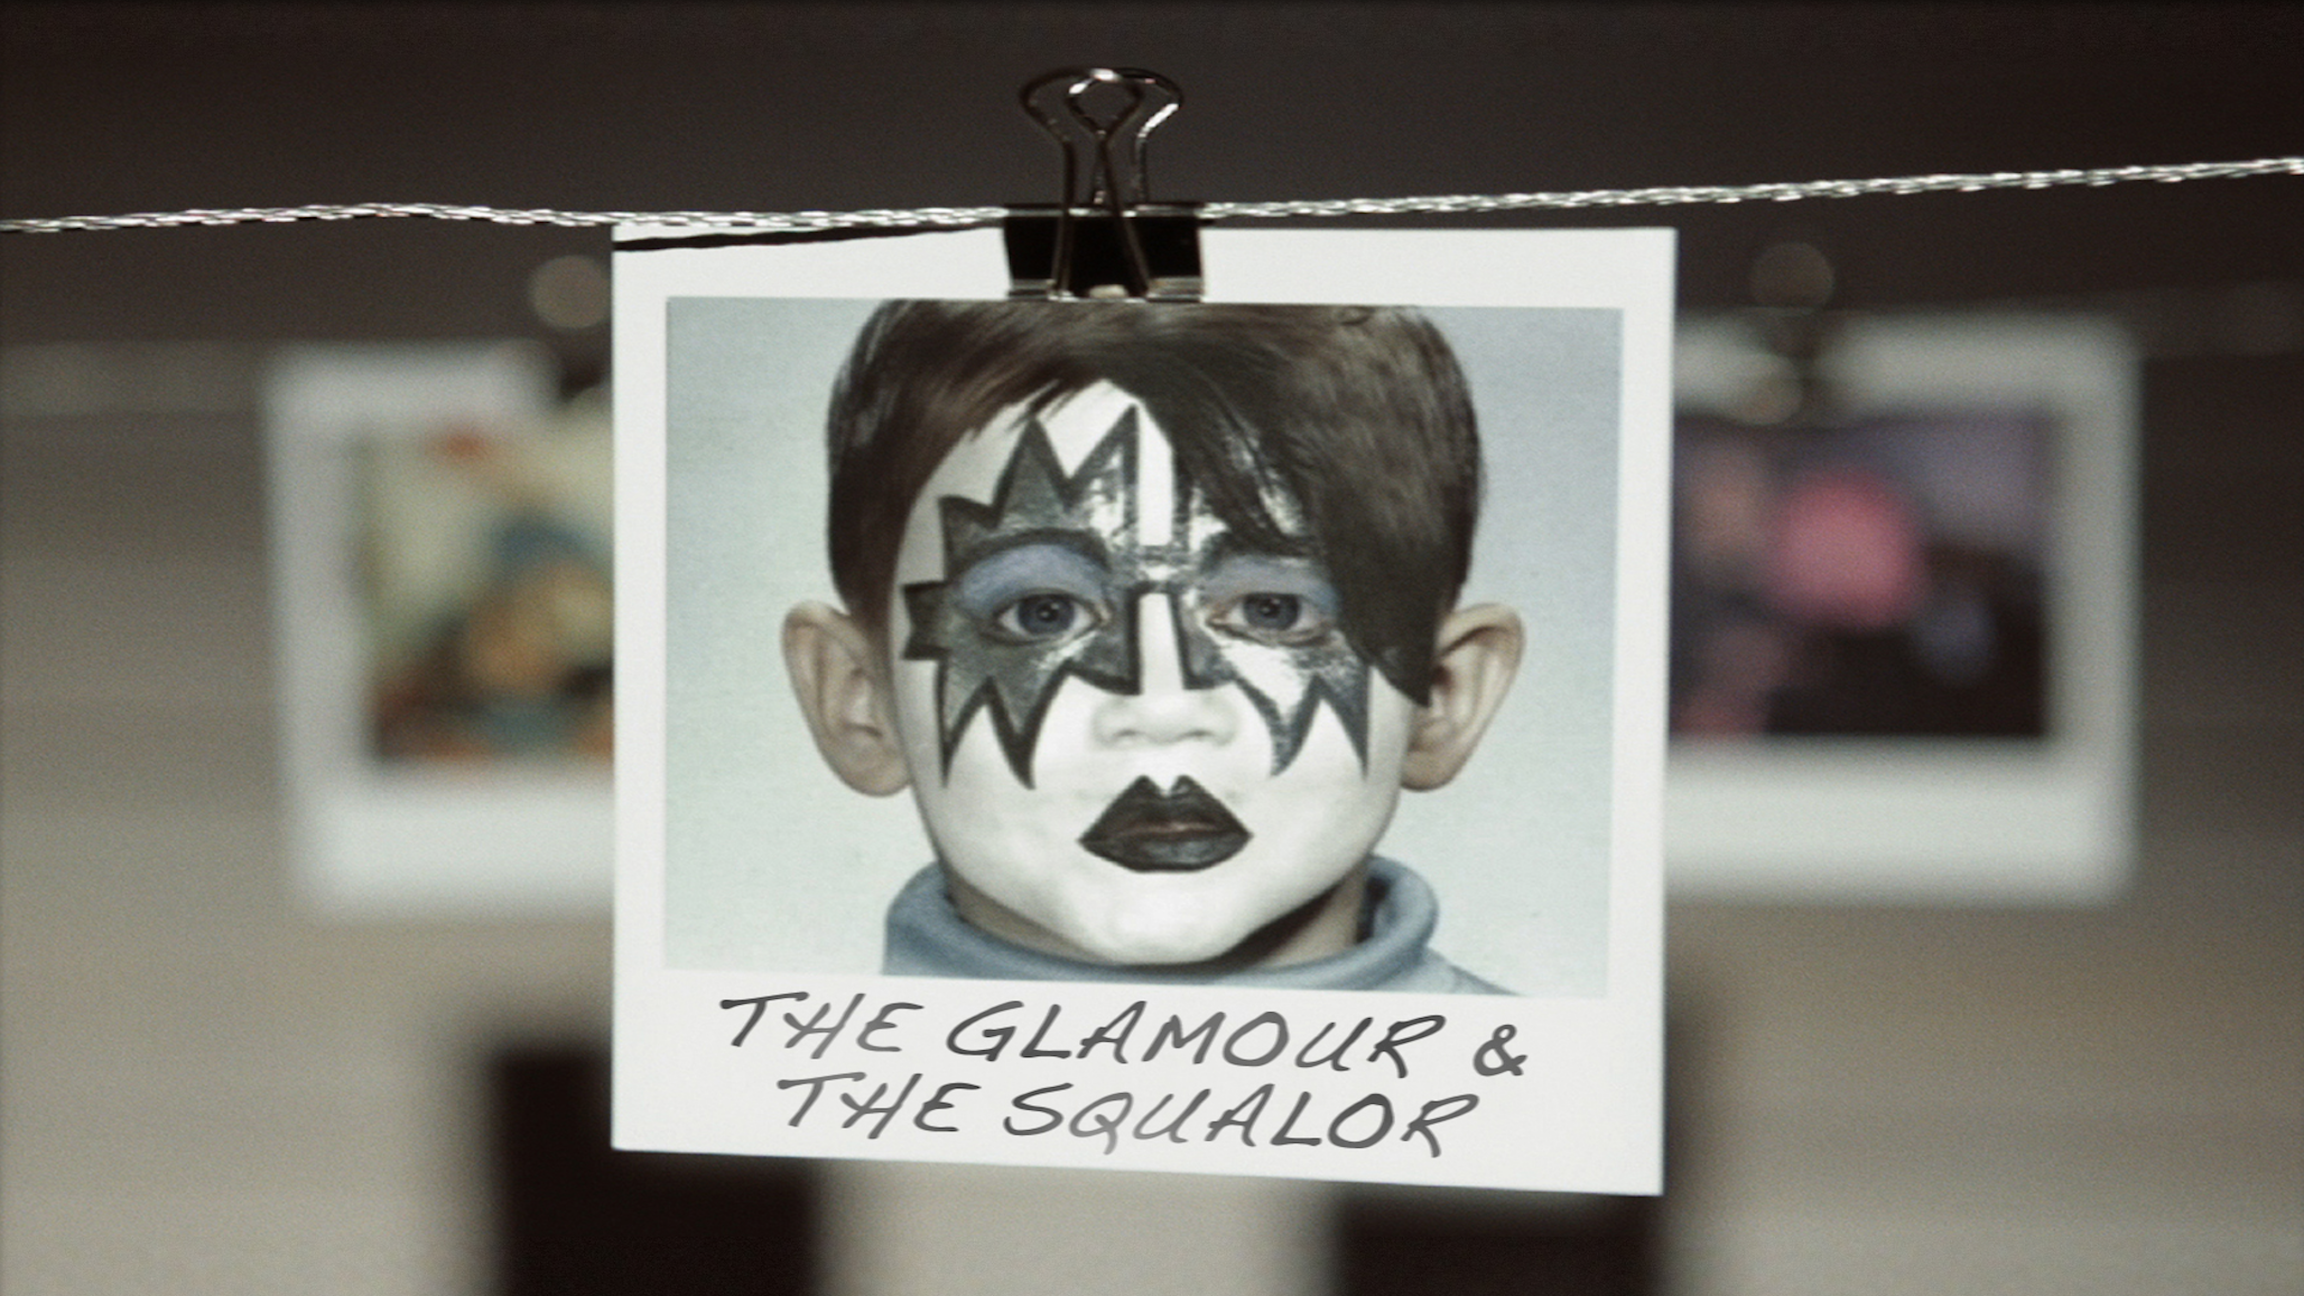 The Glamour & The Squalor